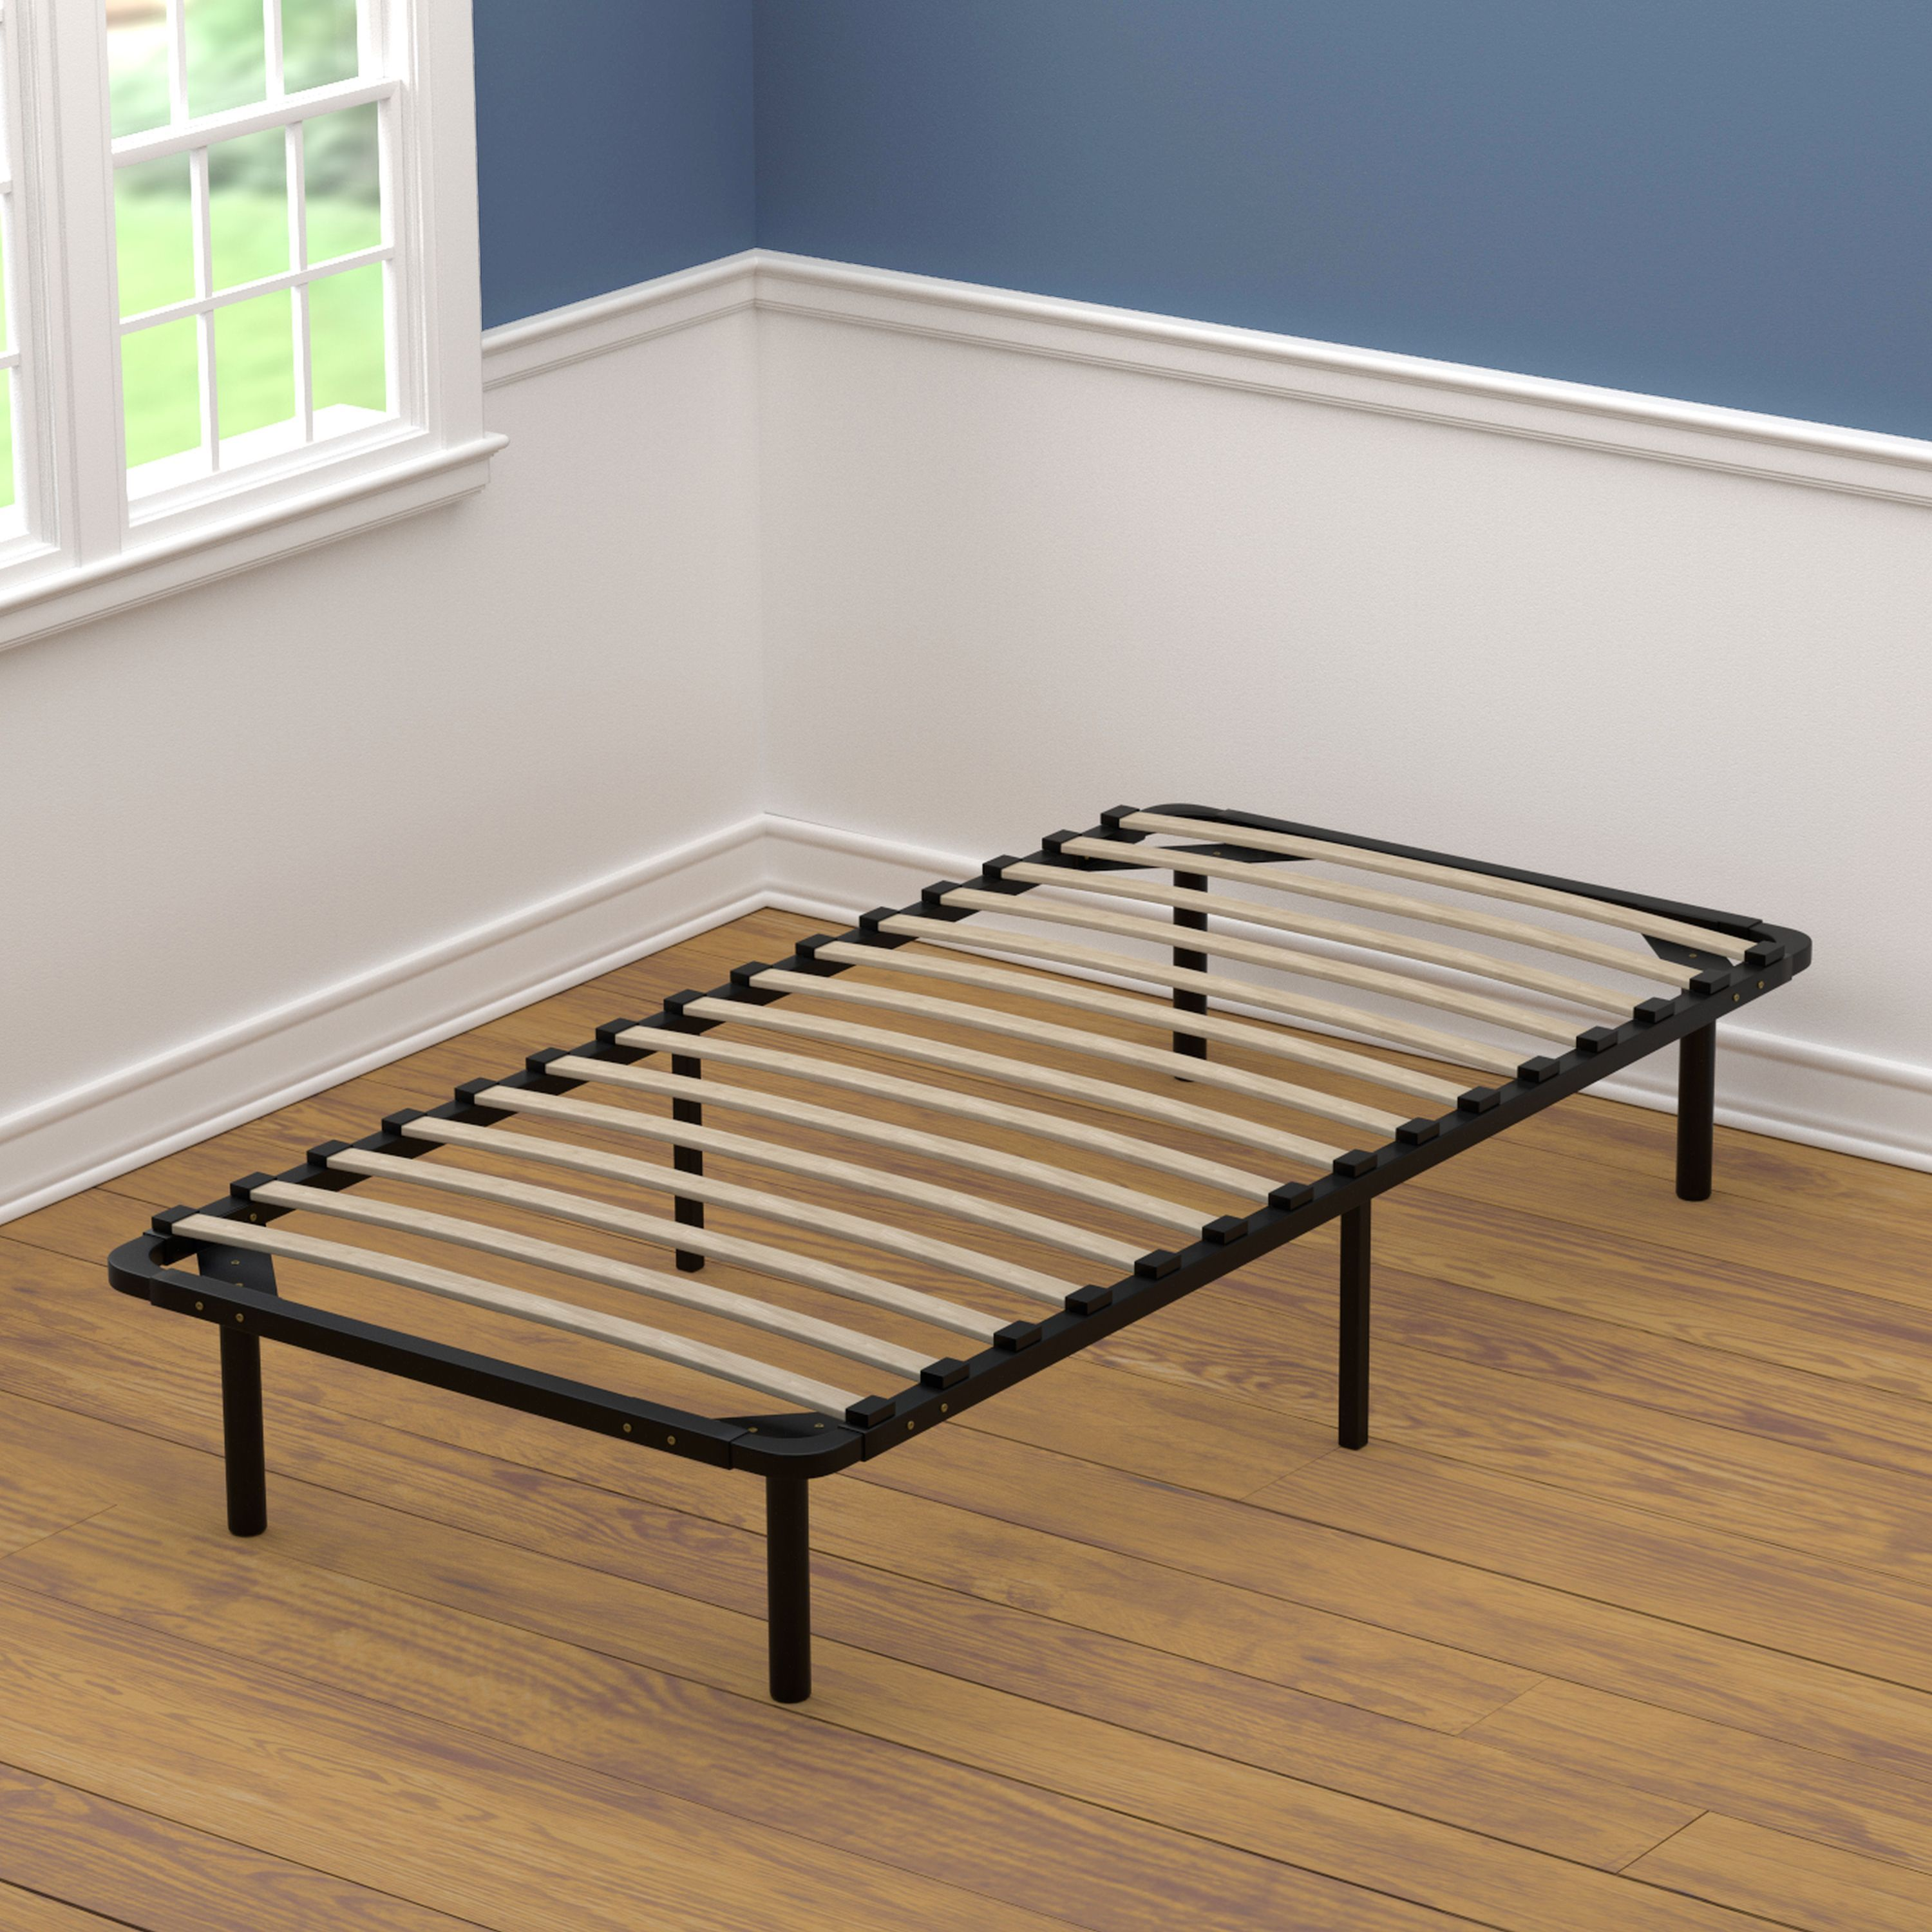 Living XL Twin Size Wood Slat Bed Frame (Wood Slat), Black, Size Twin XL